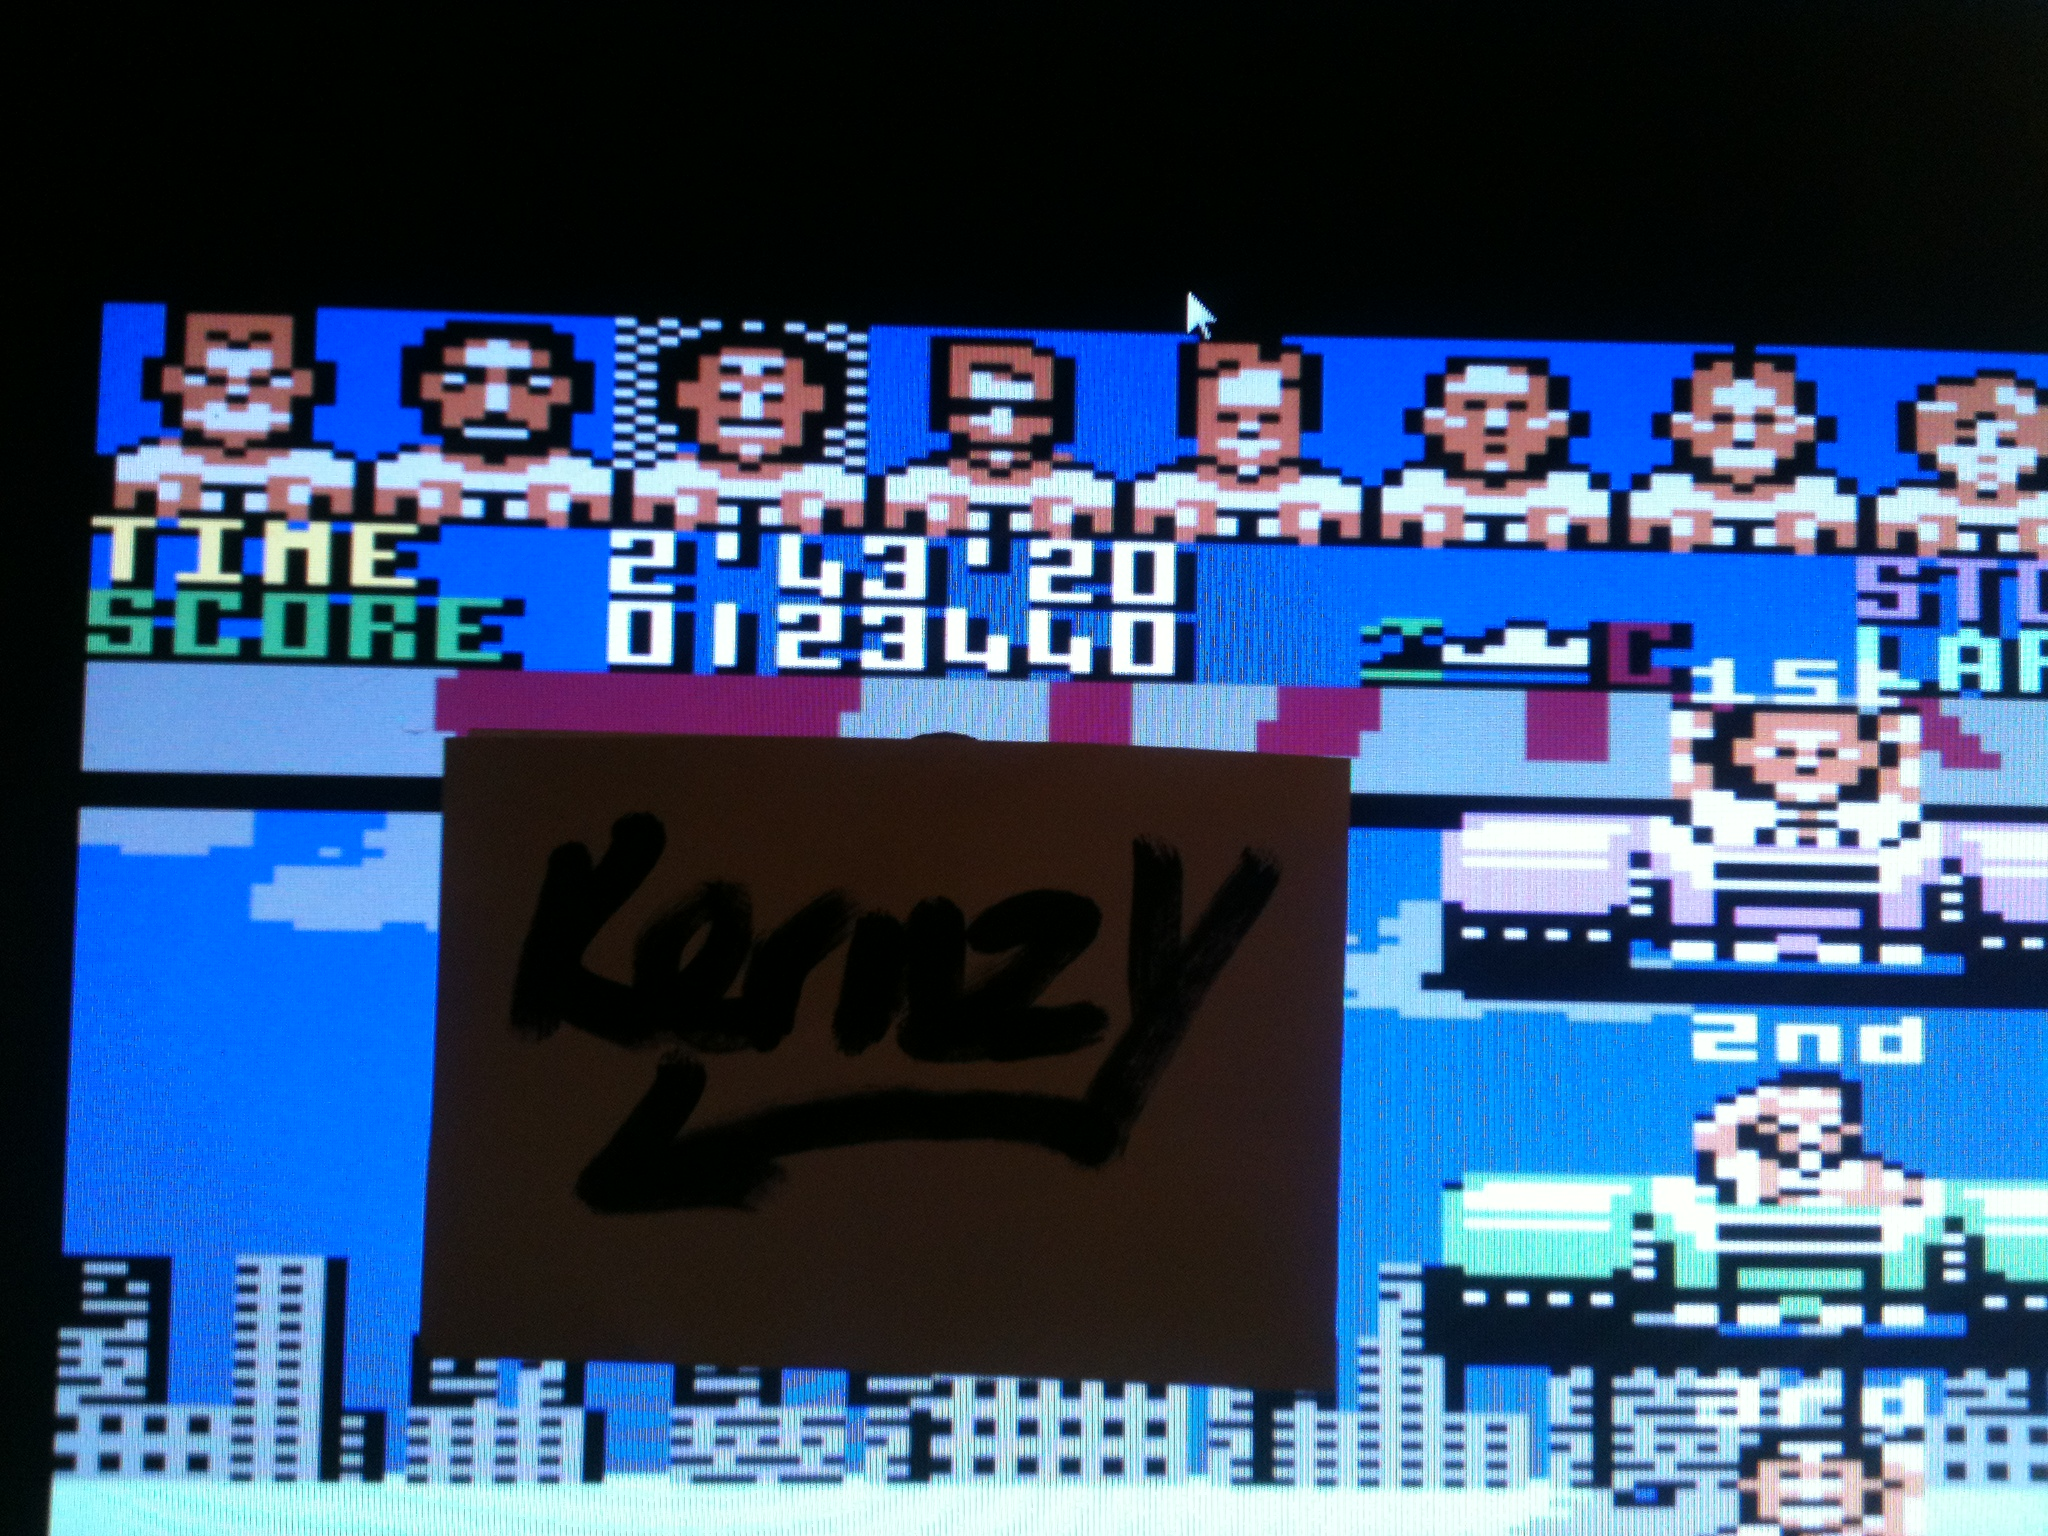 kernzy: Power Drift (Commodore 64 Emulated) 123,440 points on 2015-05-07 19:47:31